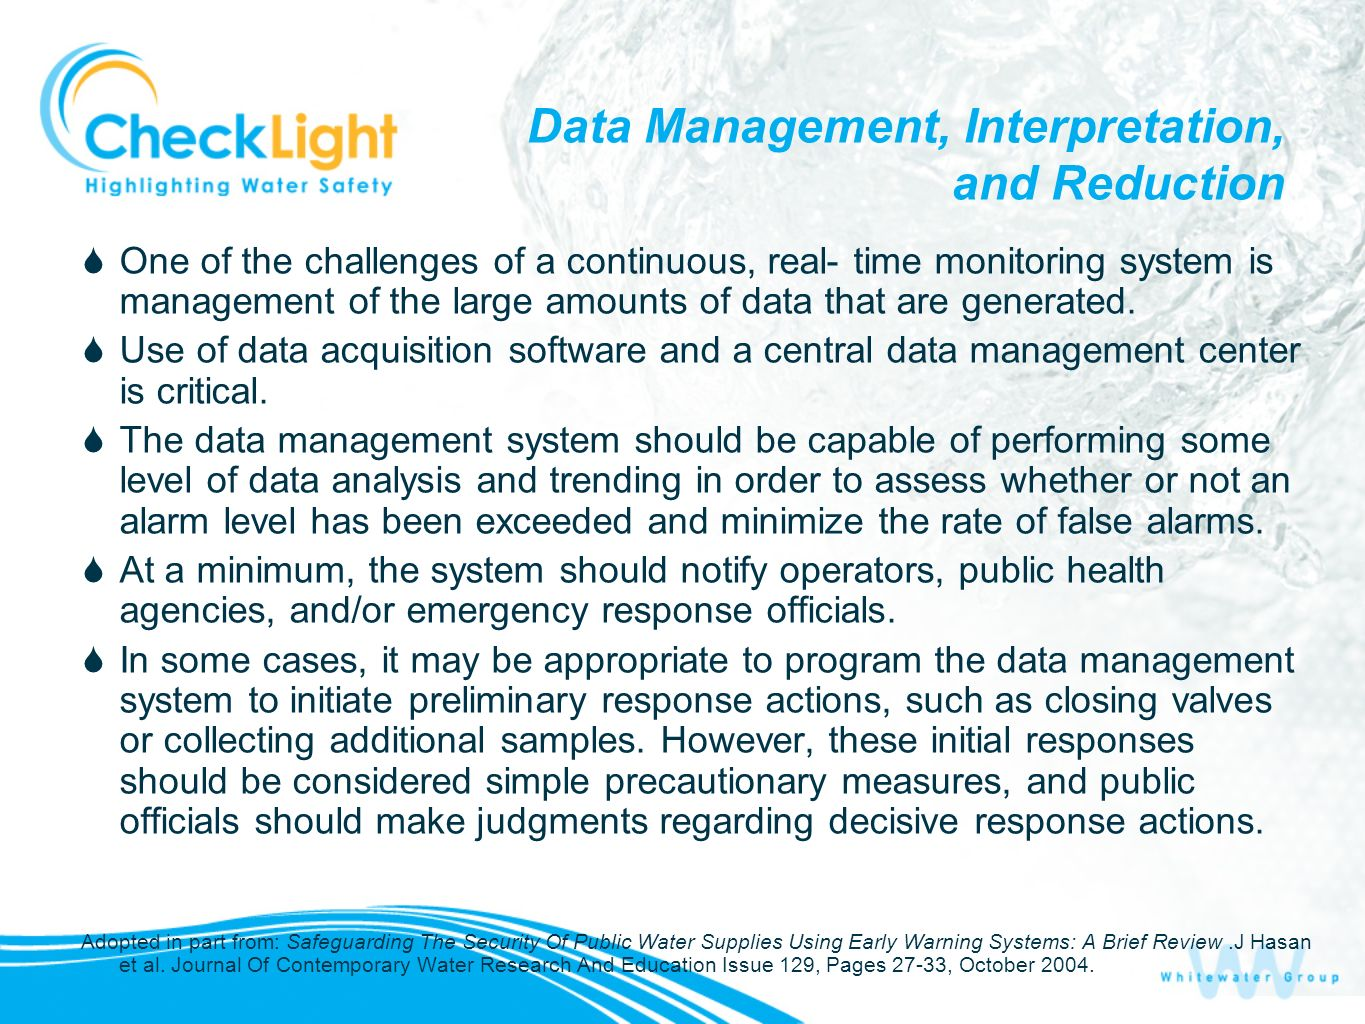 Data Management, Interpretation, and Reduction One of the challenges of a continuous, real- time monitoring system is management of the large amounts of data that are generated.